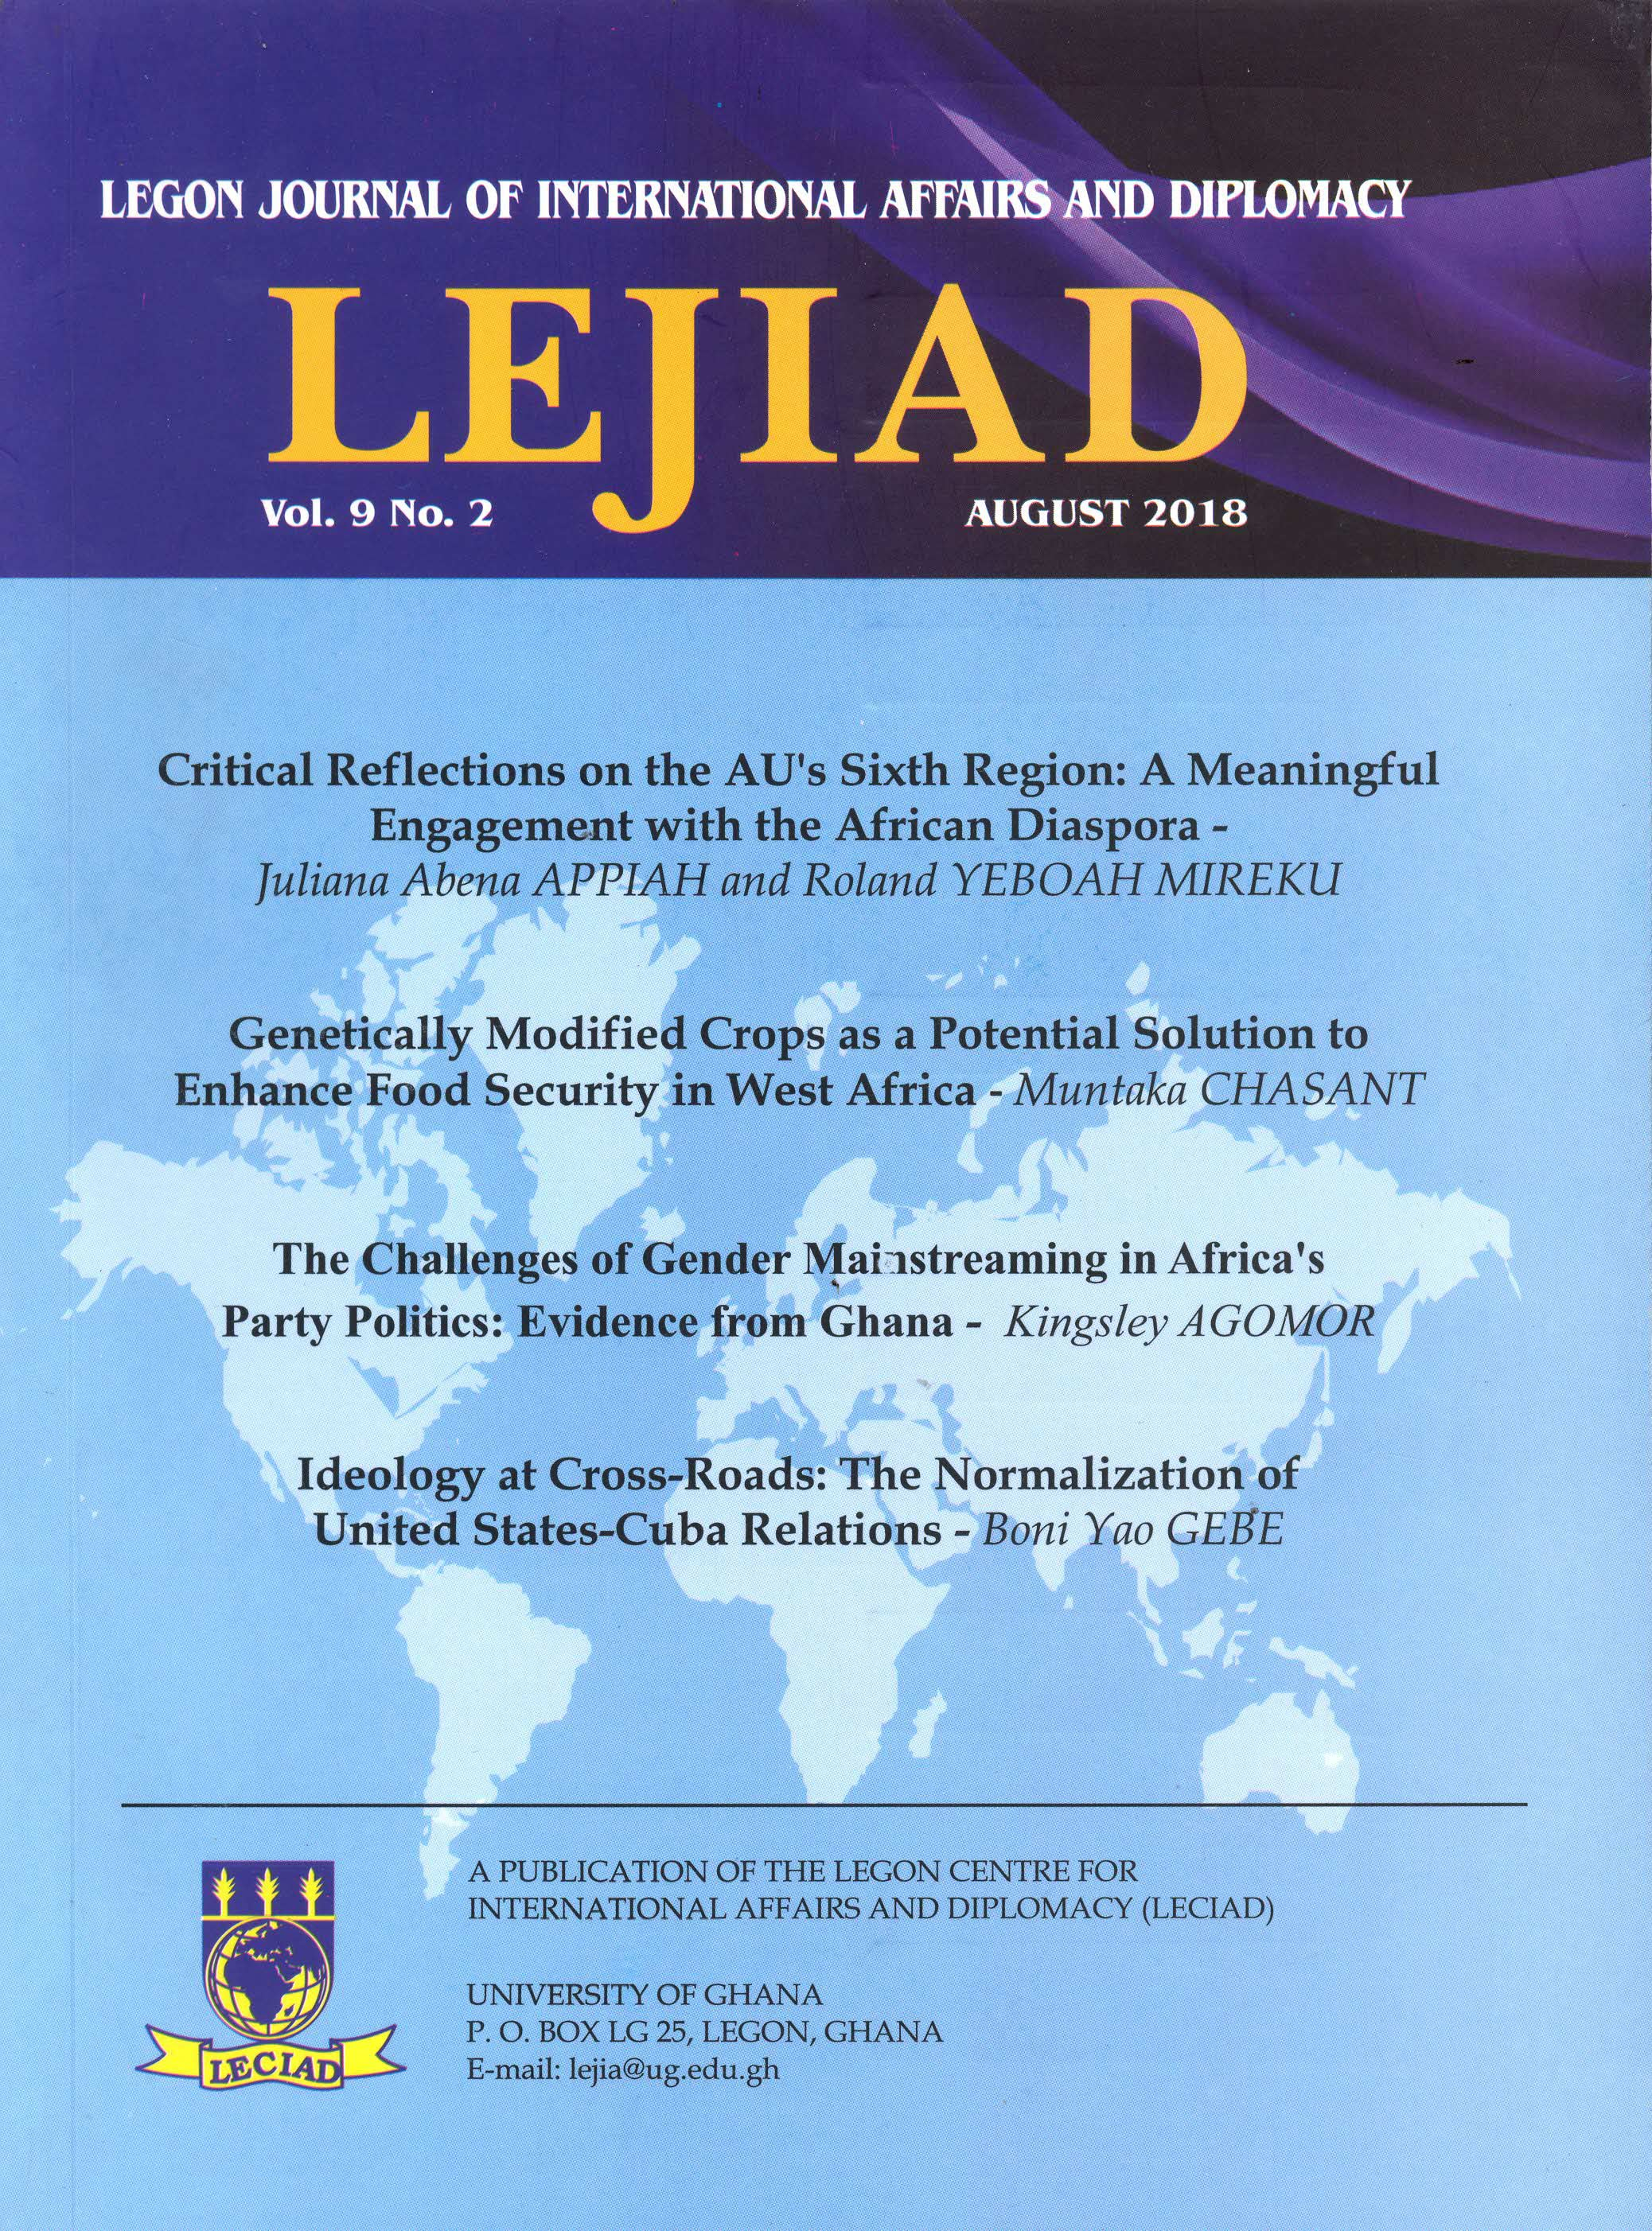 Legon Journal for International Affairs and Diplomacy